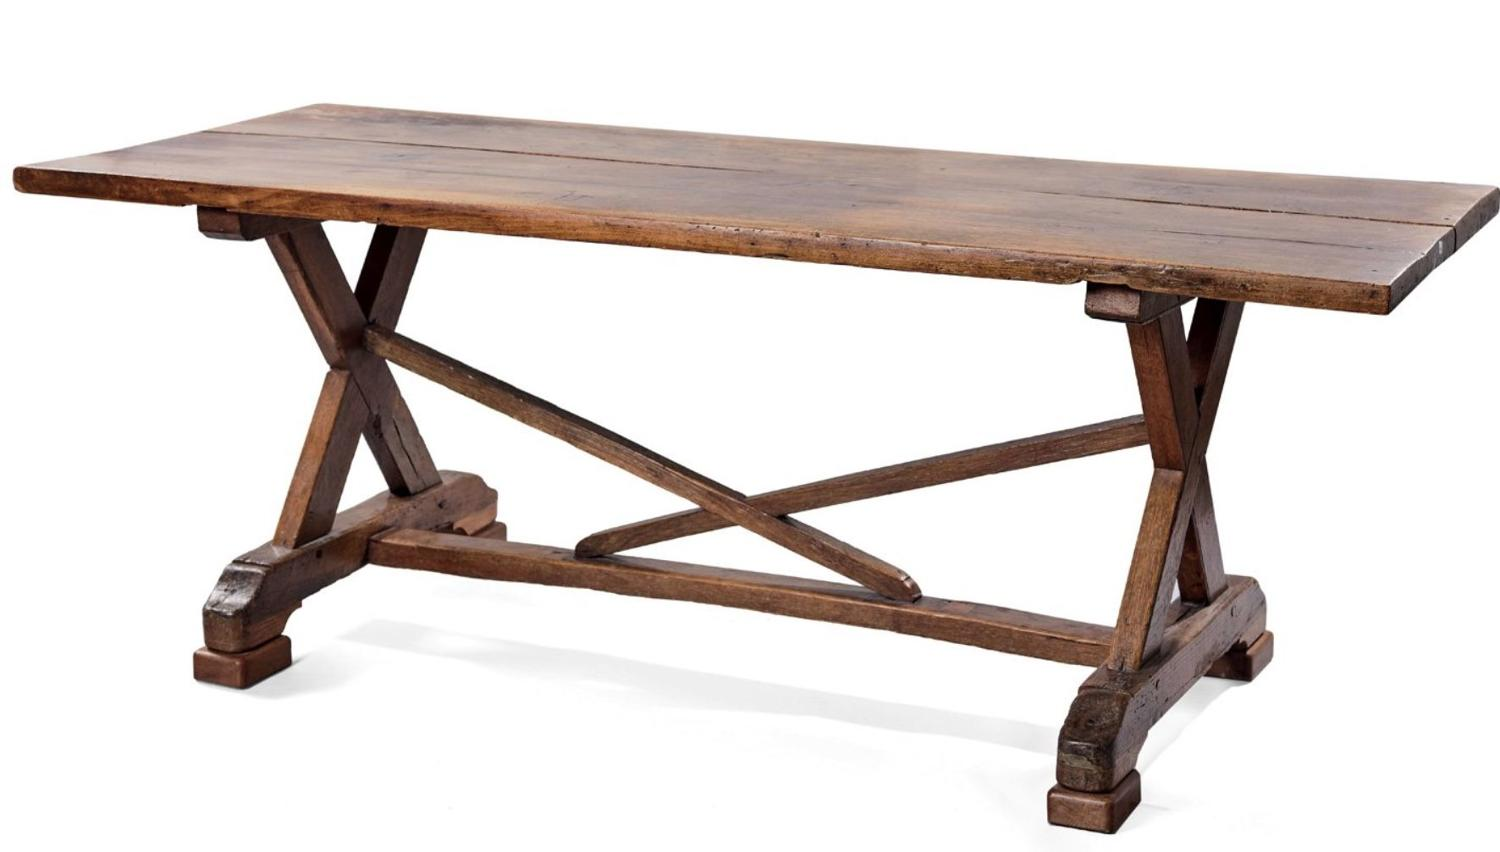 AN 18TH CENTURY TRESTLE TABLE